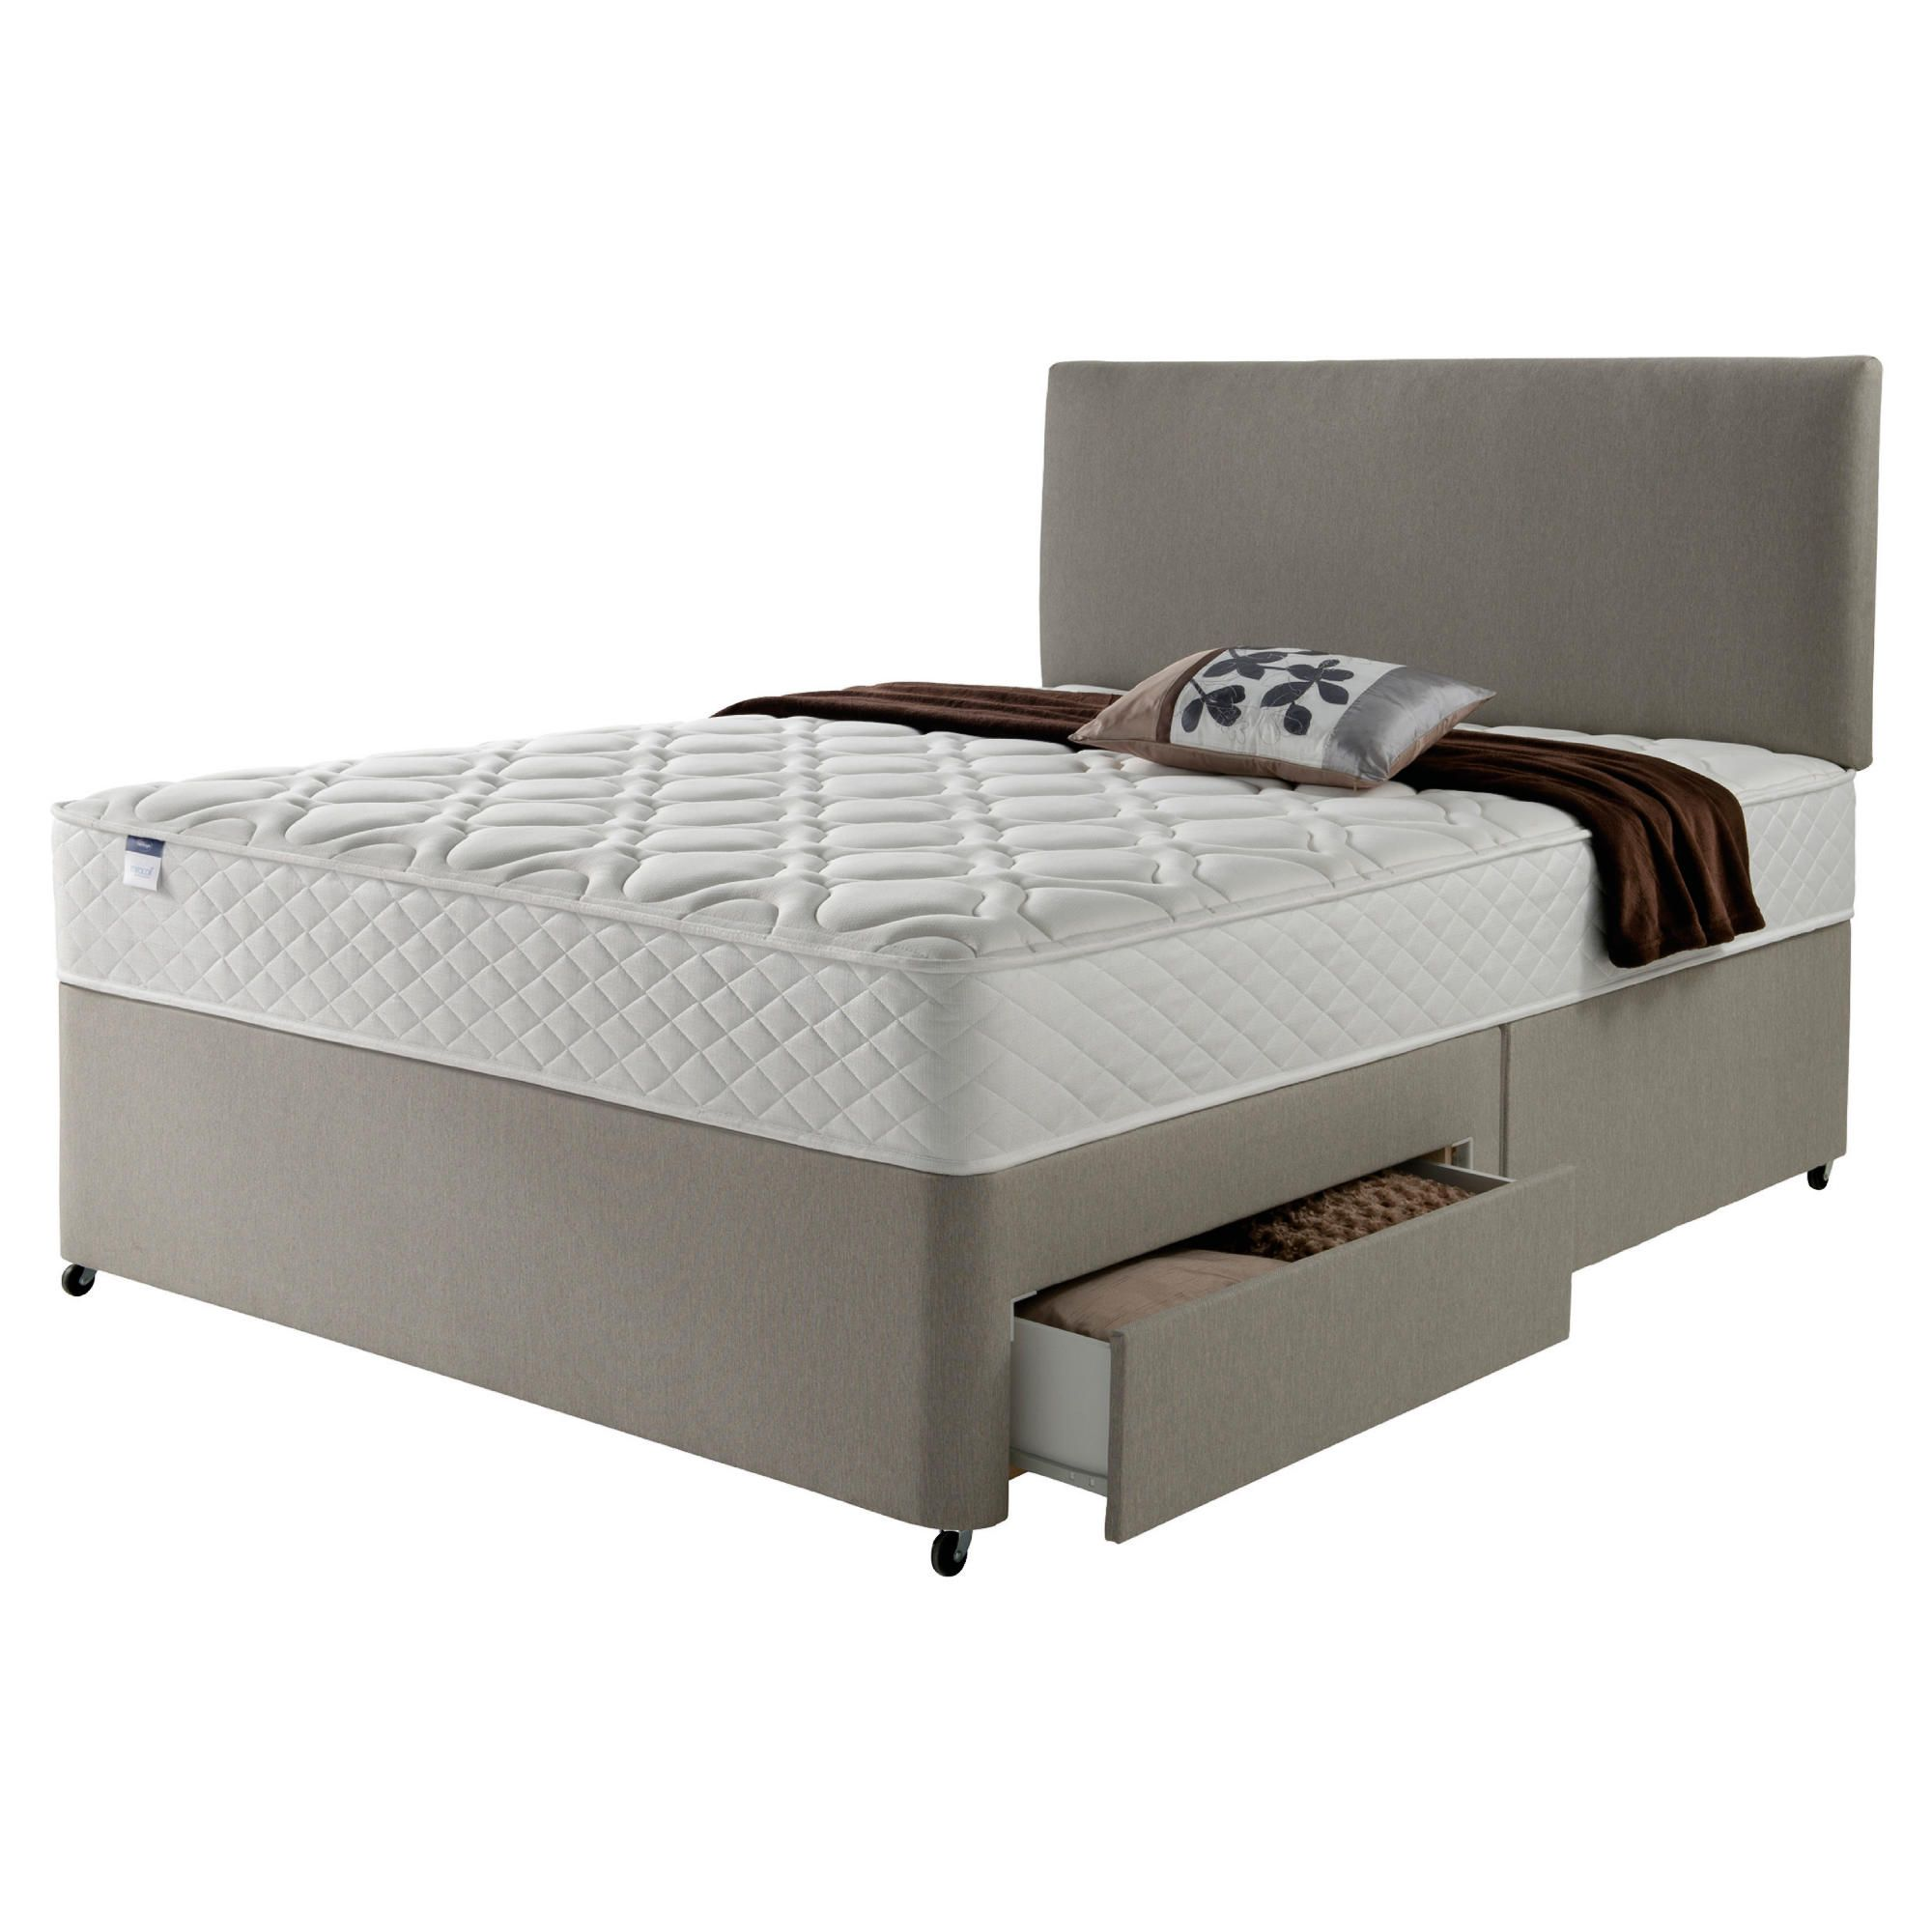 Silentnight Miracoil Luxury Micro Quilt 4 Drawer King Size Divan Mink with Headboard at Tesco Direct